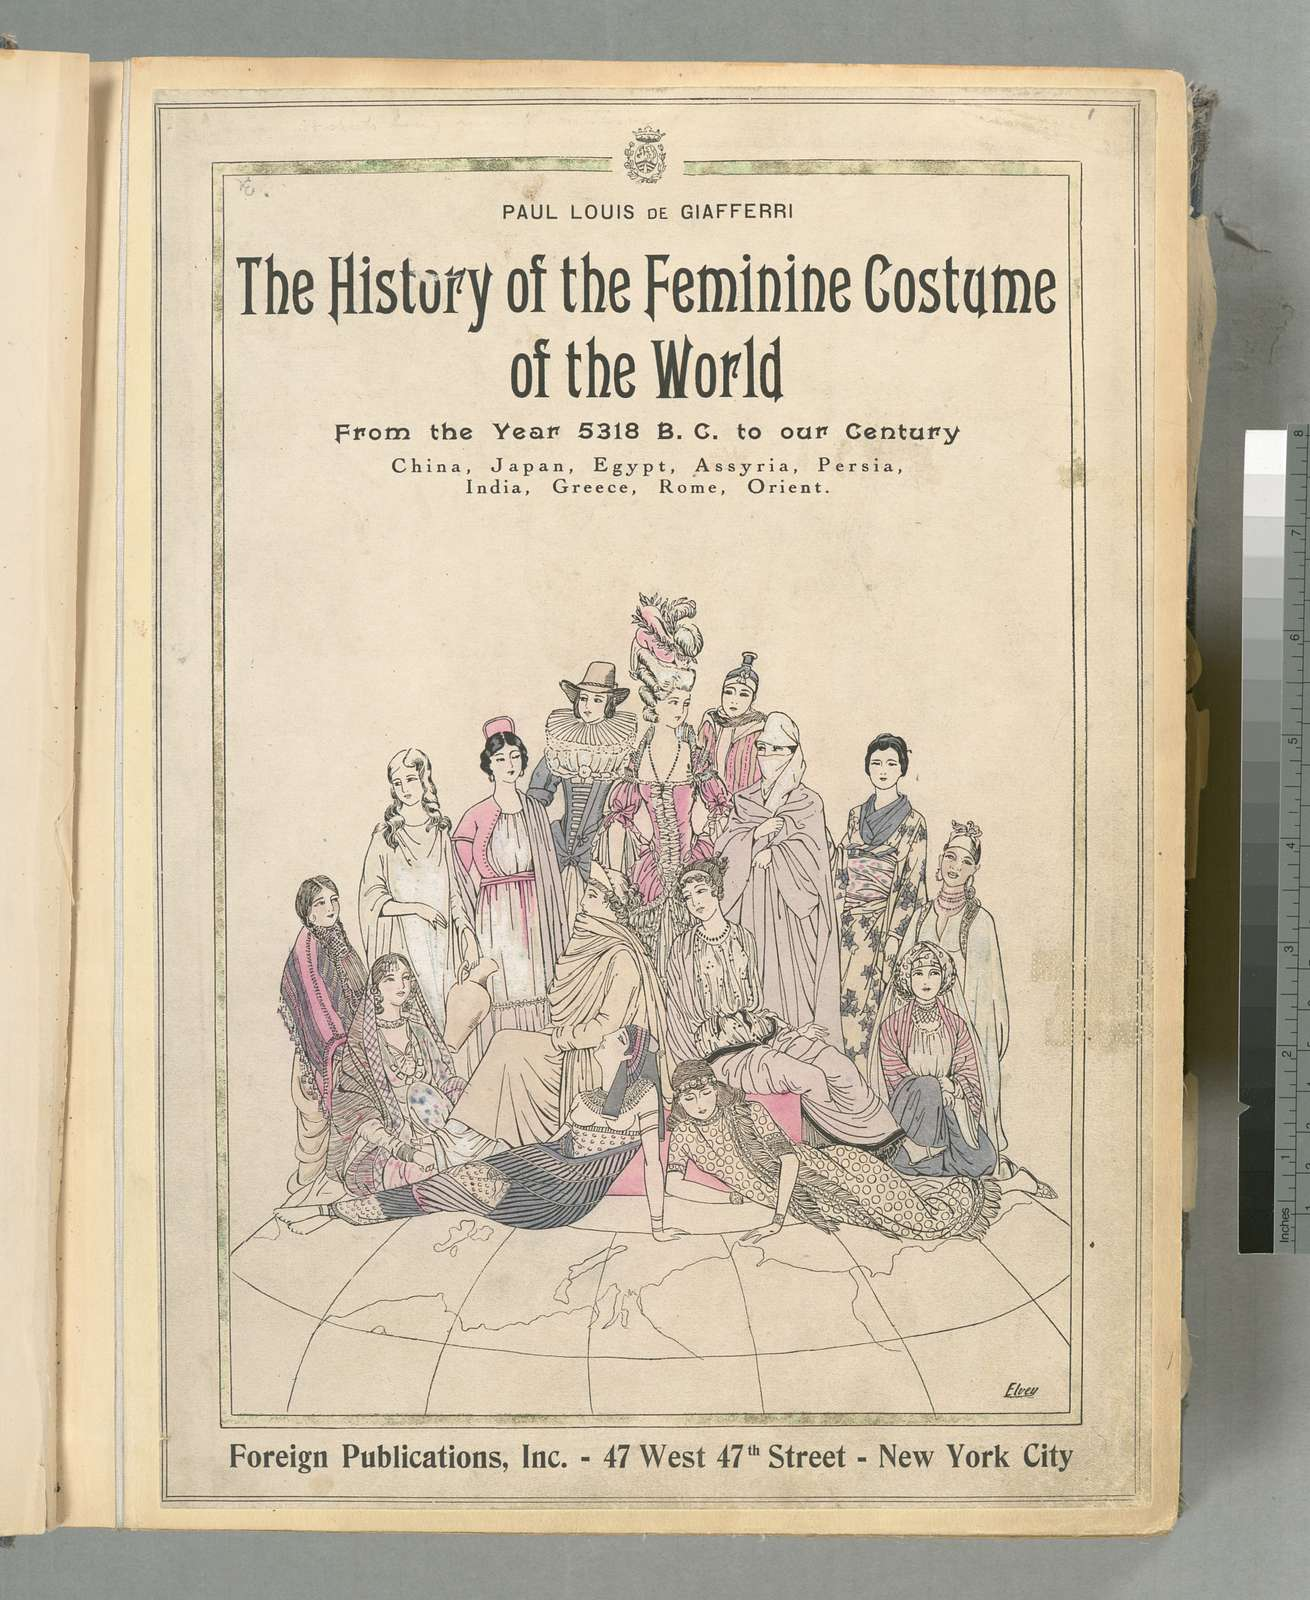 The history of the feminine costume of the world from the year 5318 B.C. to our century. China, Japan, Egypt, Assyria, Persia, India Greece, Rome, Orient.